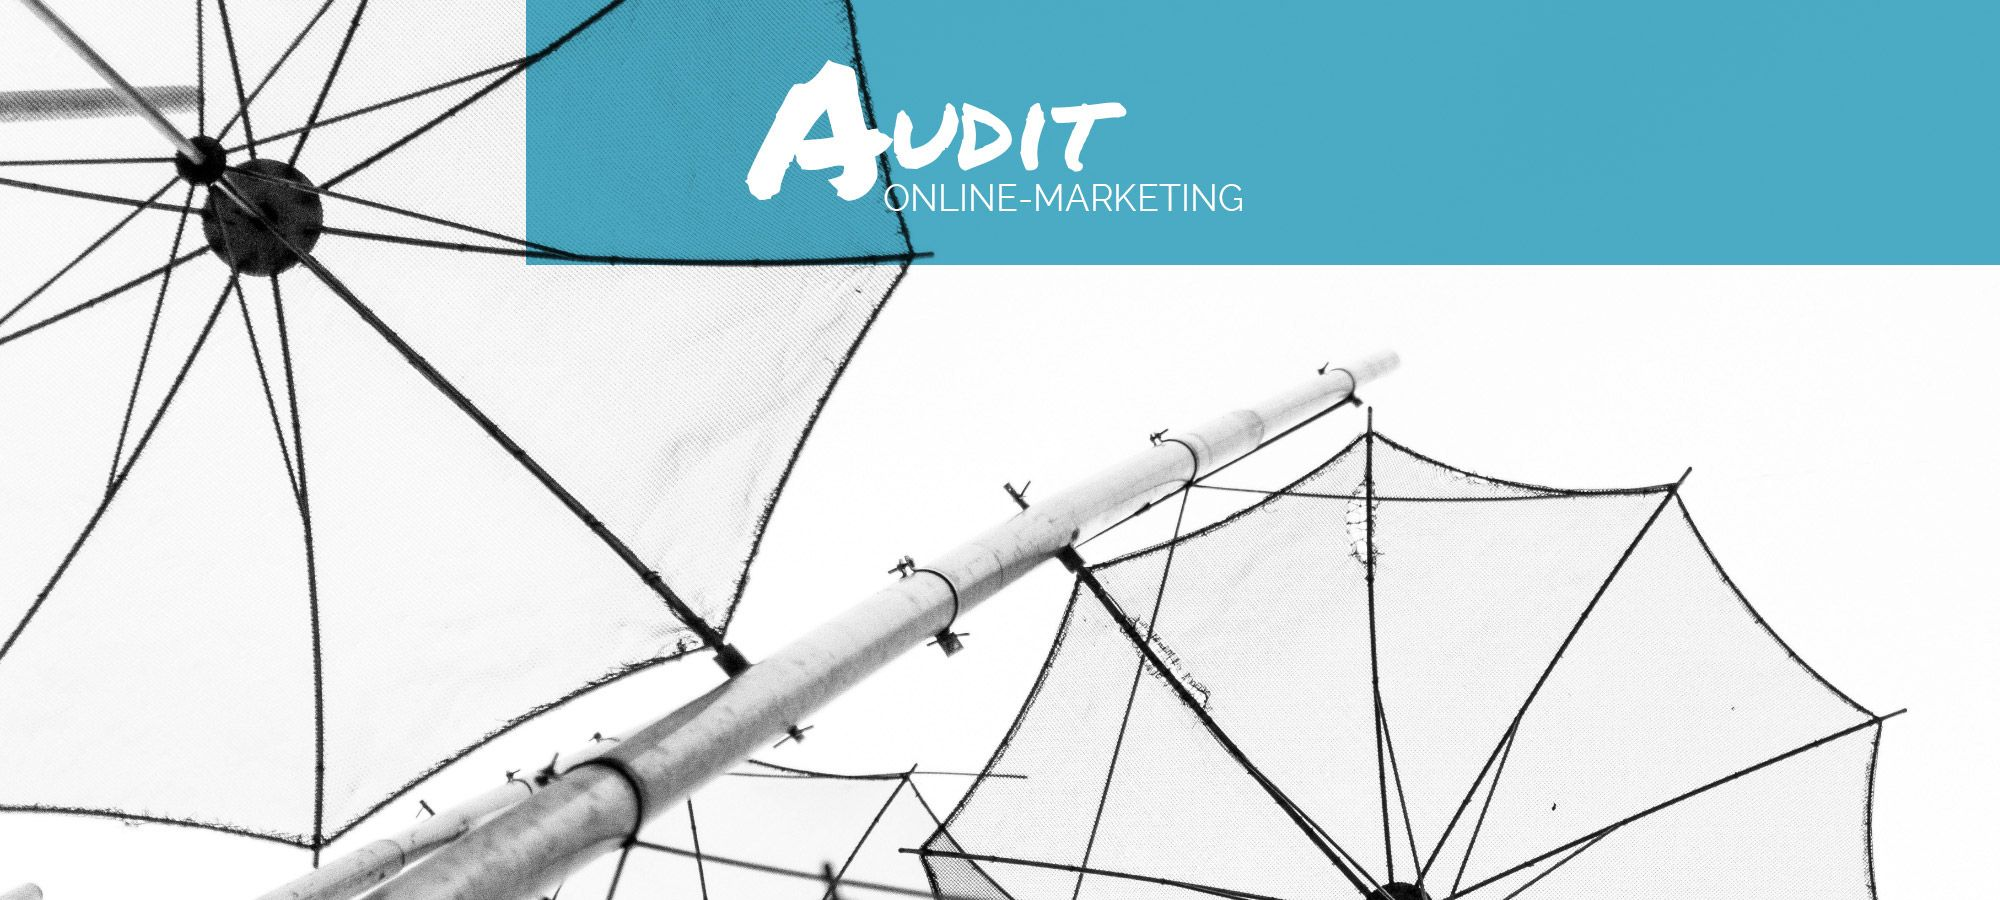 Online-Marketing Audit